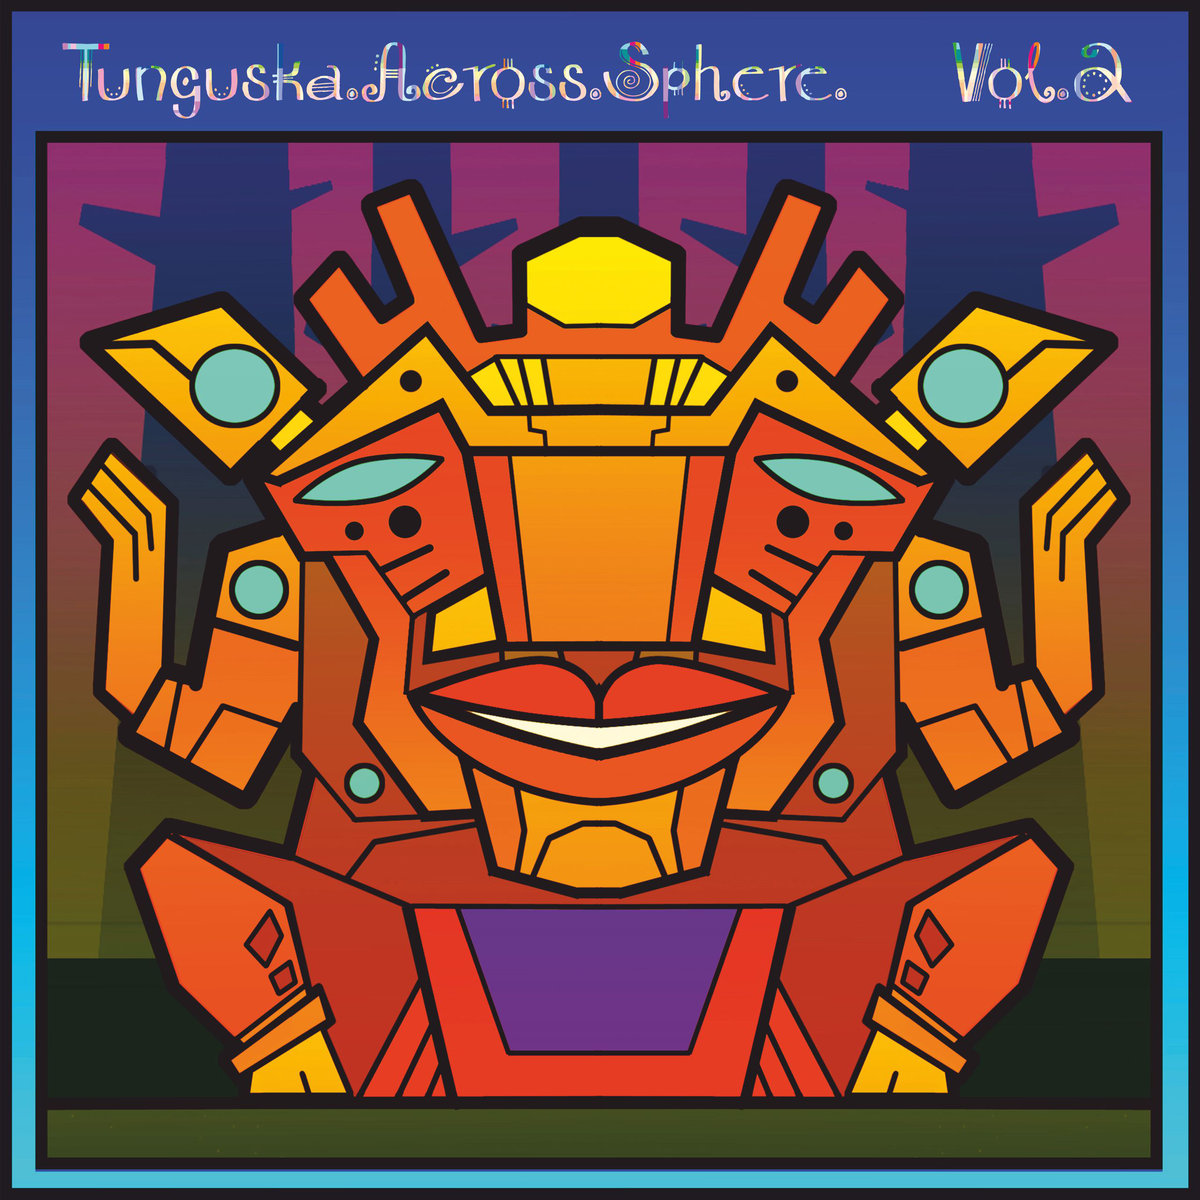 El gambrero - Walk in Portugal @ 'Ellipsis II - Tunguska.Across.Sphere. Vol.2' album (electronic, ambient)